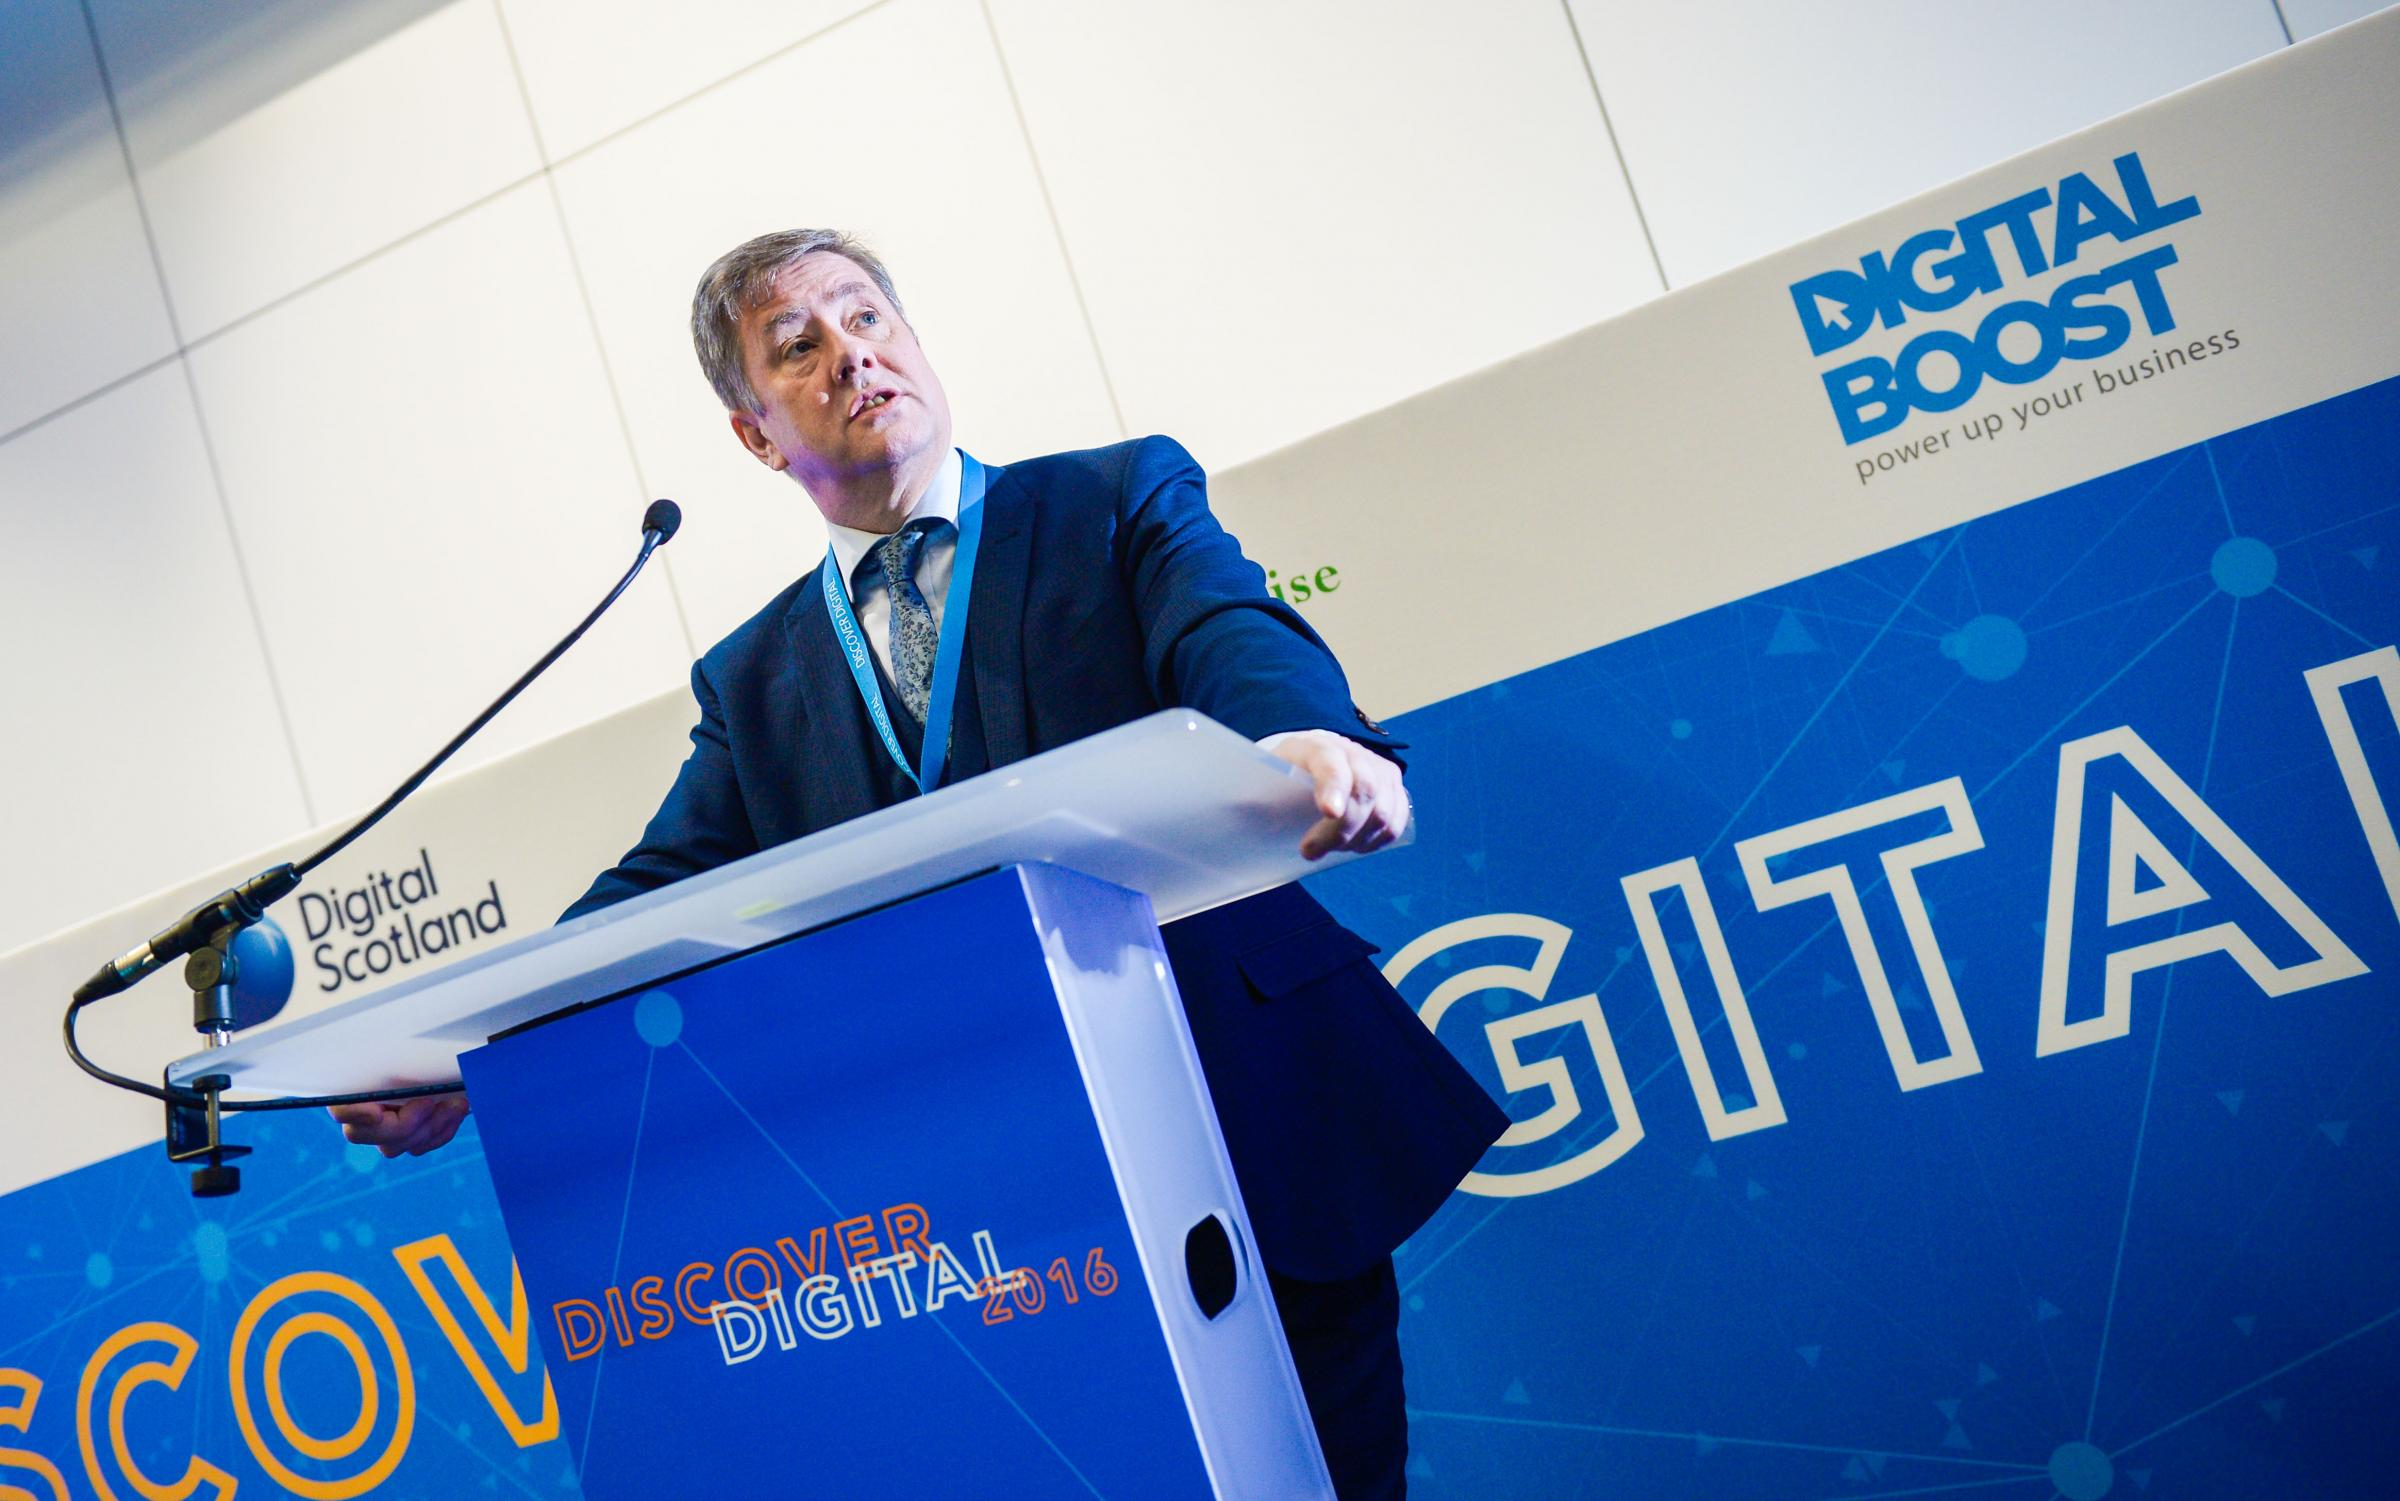 Keith Brown, Scottish cabinet secretary for infrastructure, investment and cities, opening Discover Digital 2016